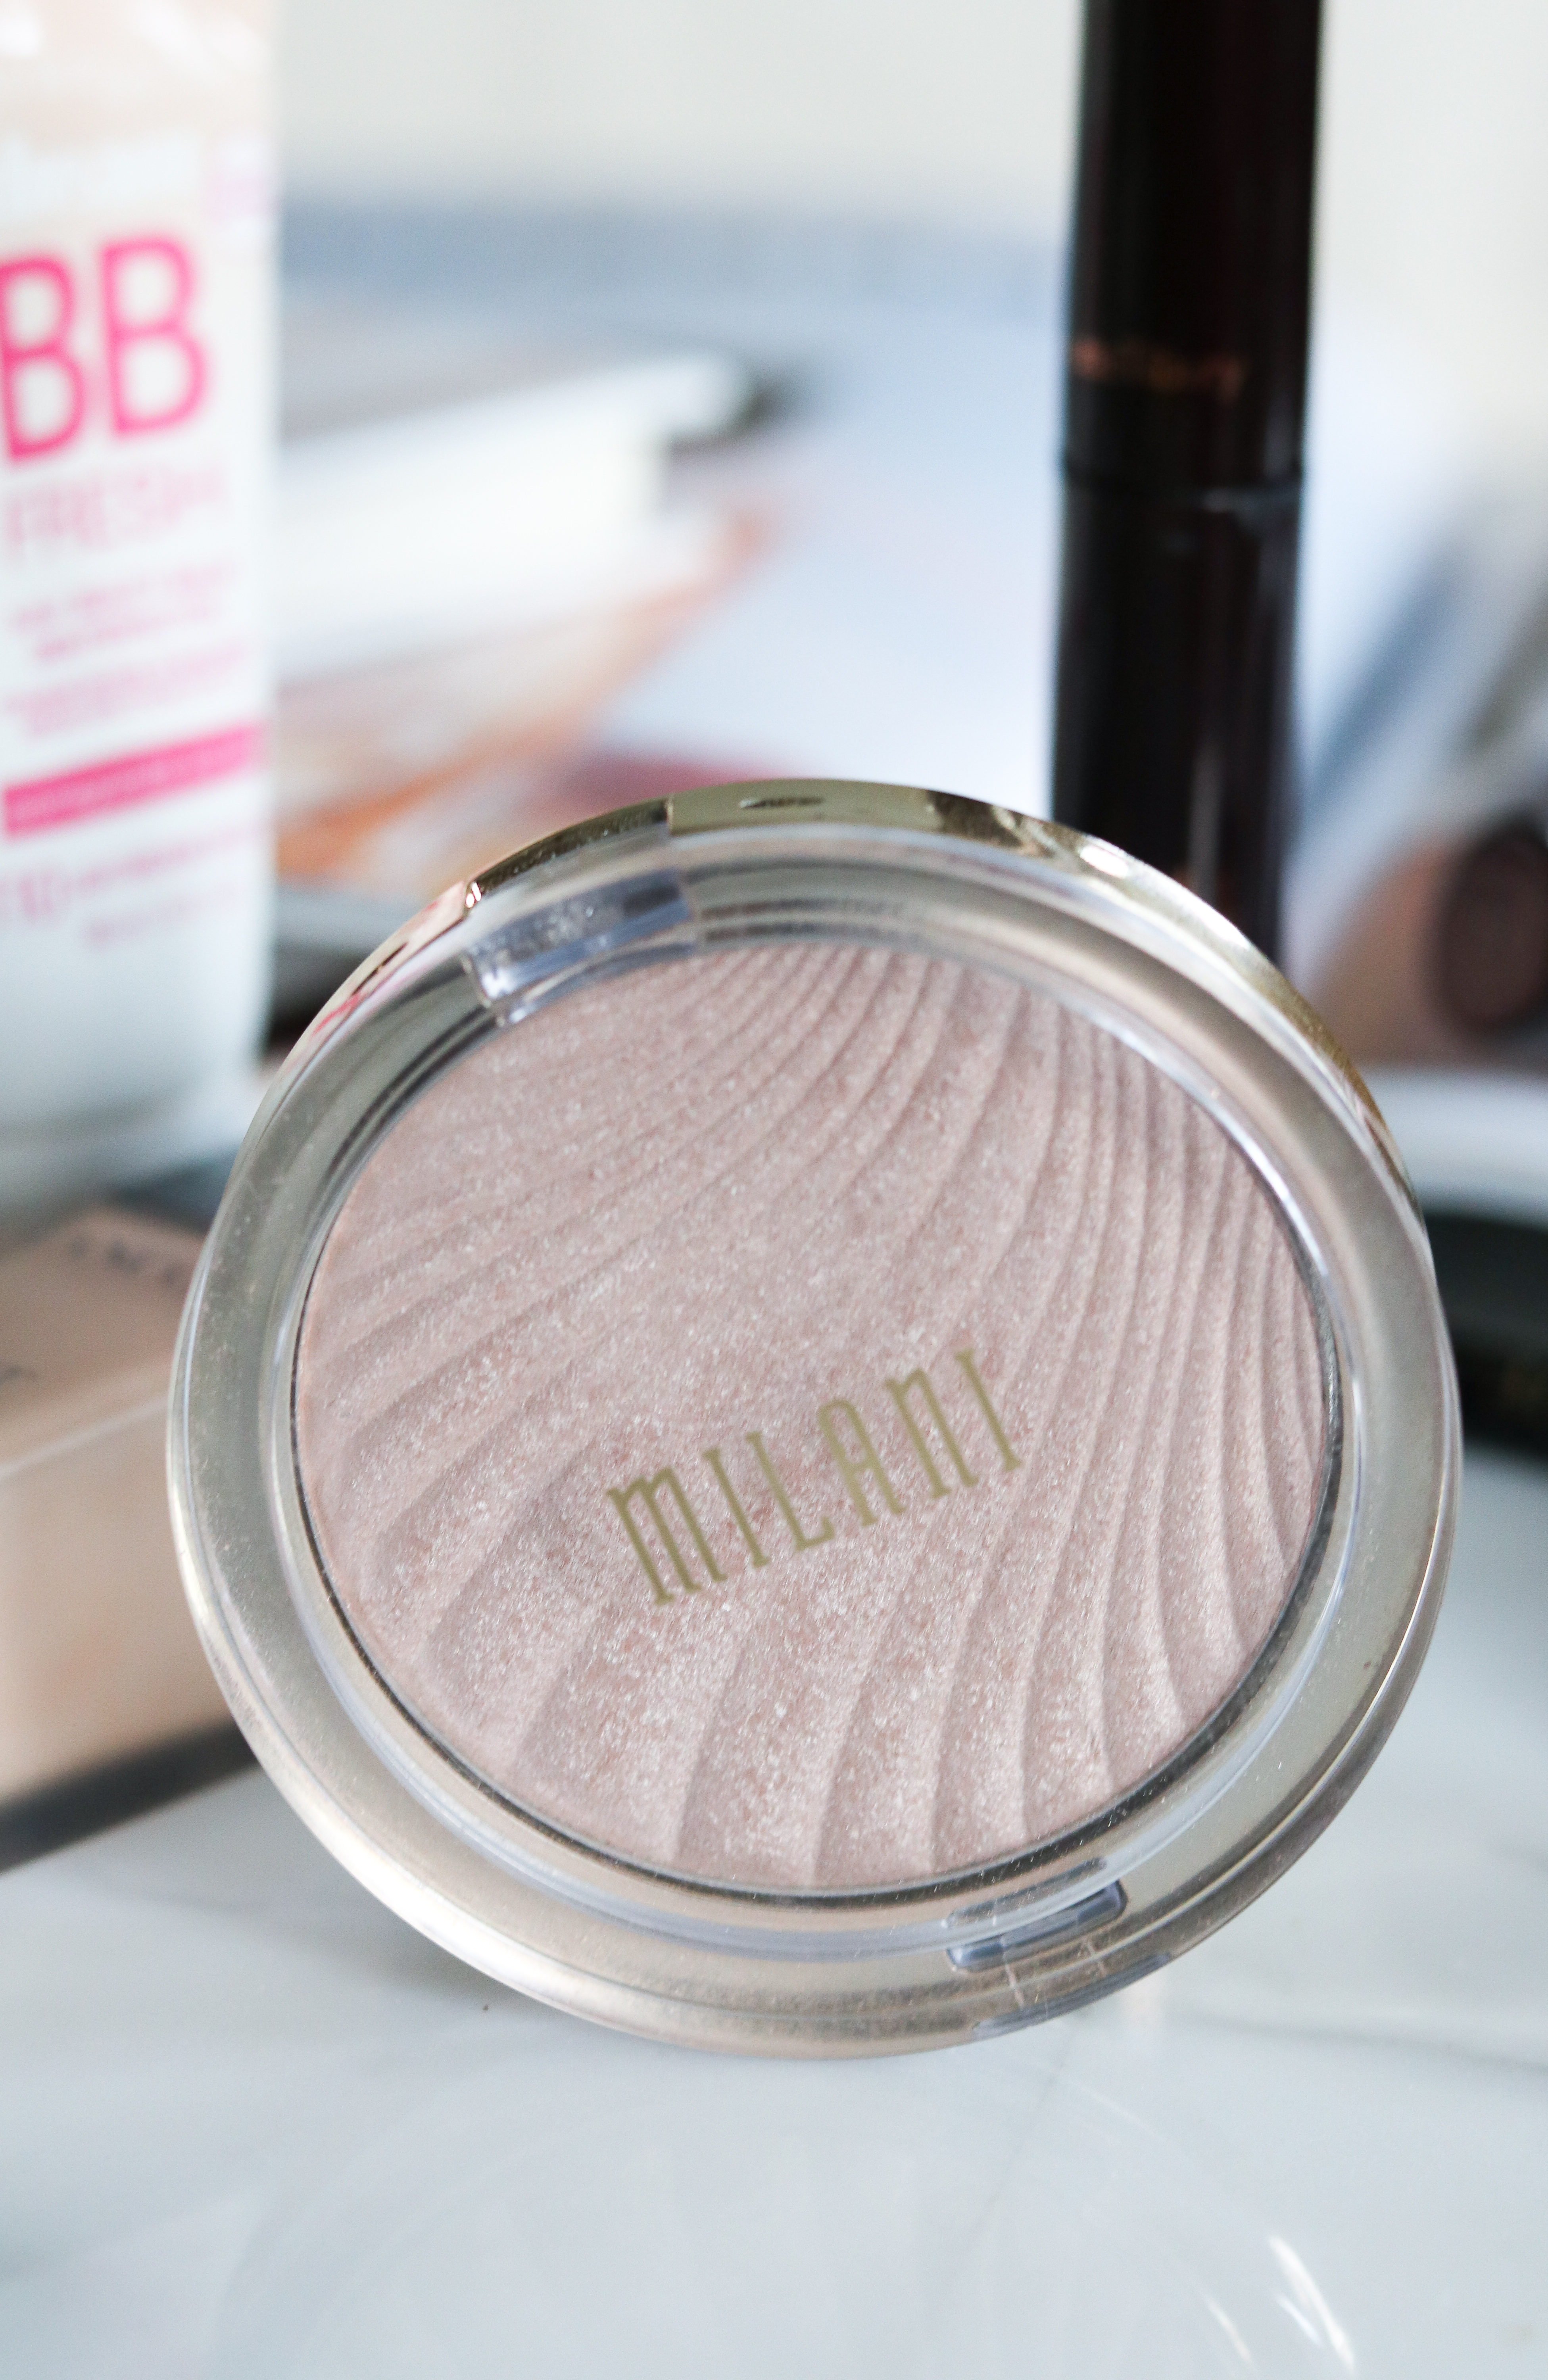 Underrated Makeup Products I Milani Strobe Highlighter #DrugstoreMakeup #Makeup